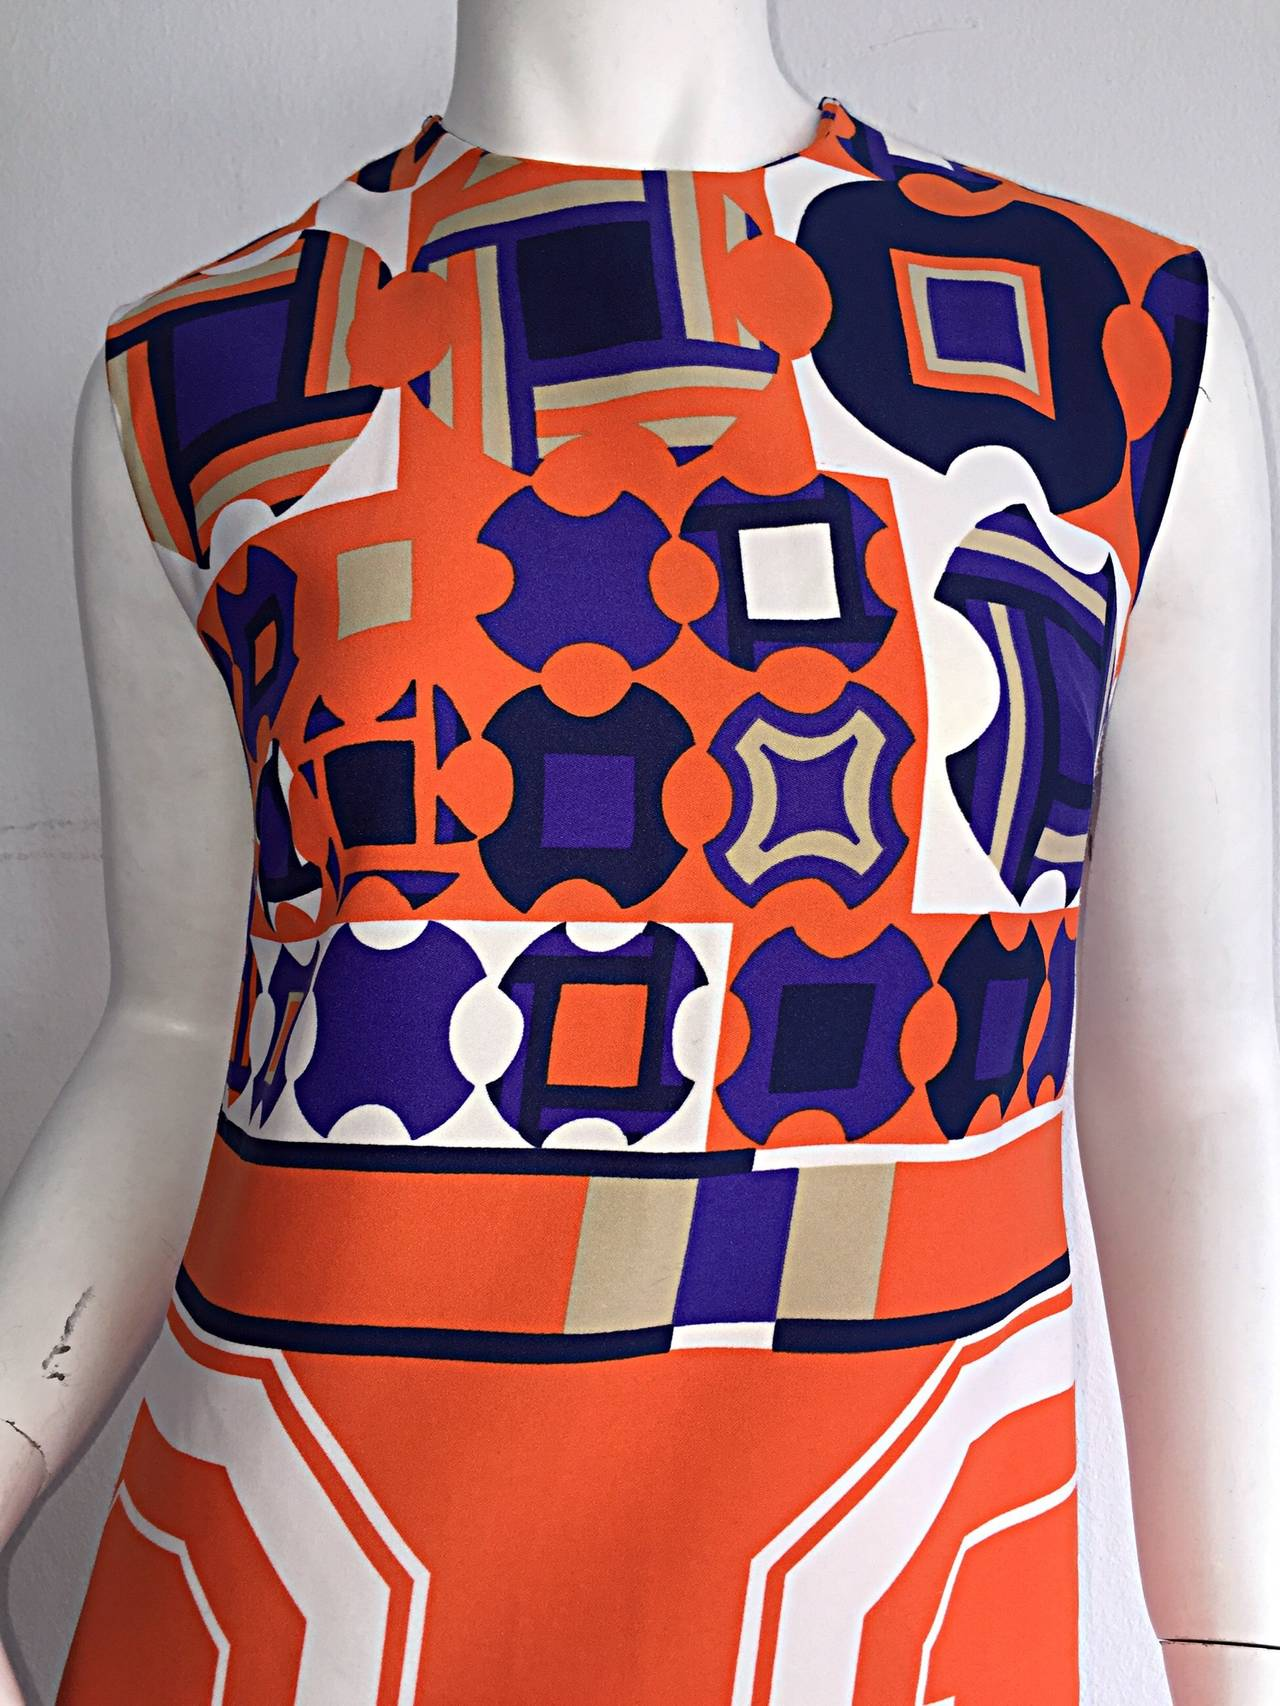 1960s Vintage Lanvin Op - Art Geometric Mod ' Buckle ' Print Shift 3 - D Dress 4